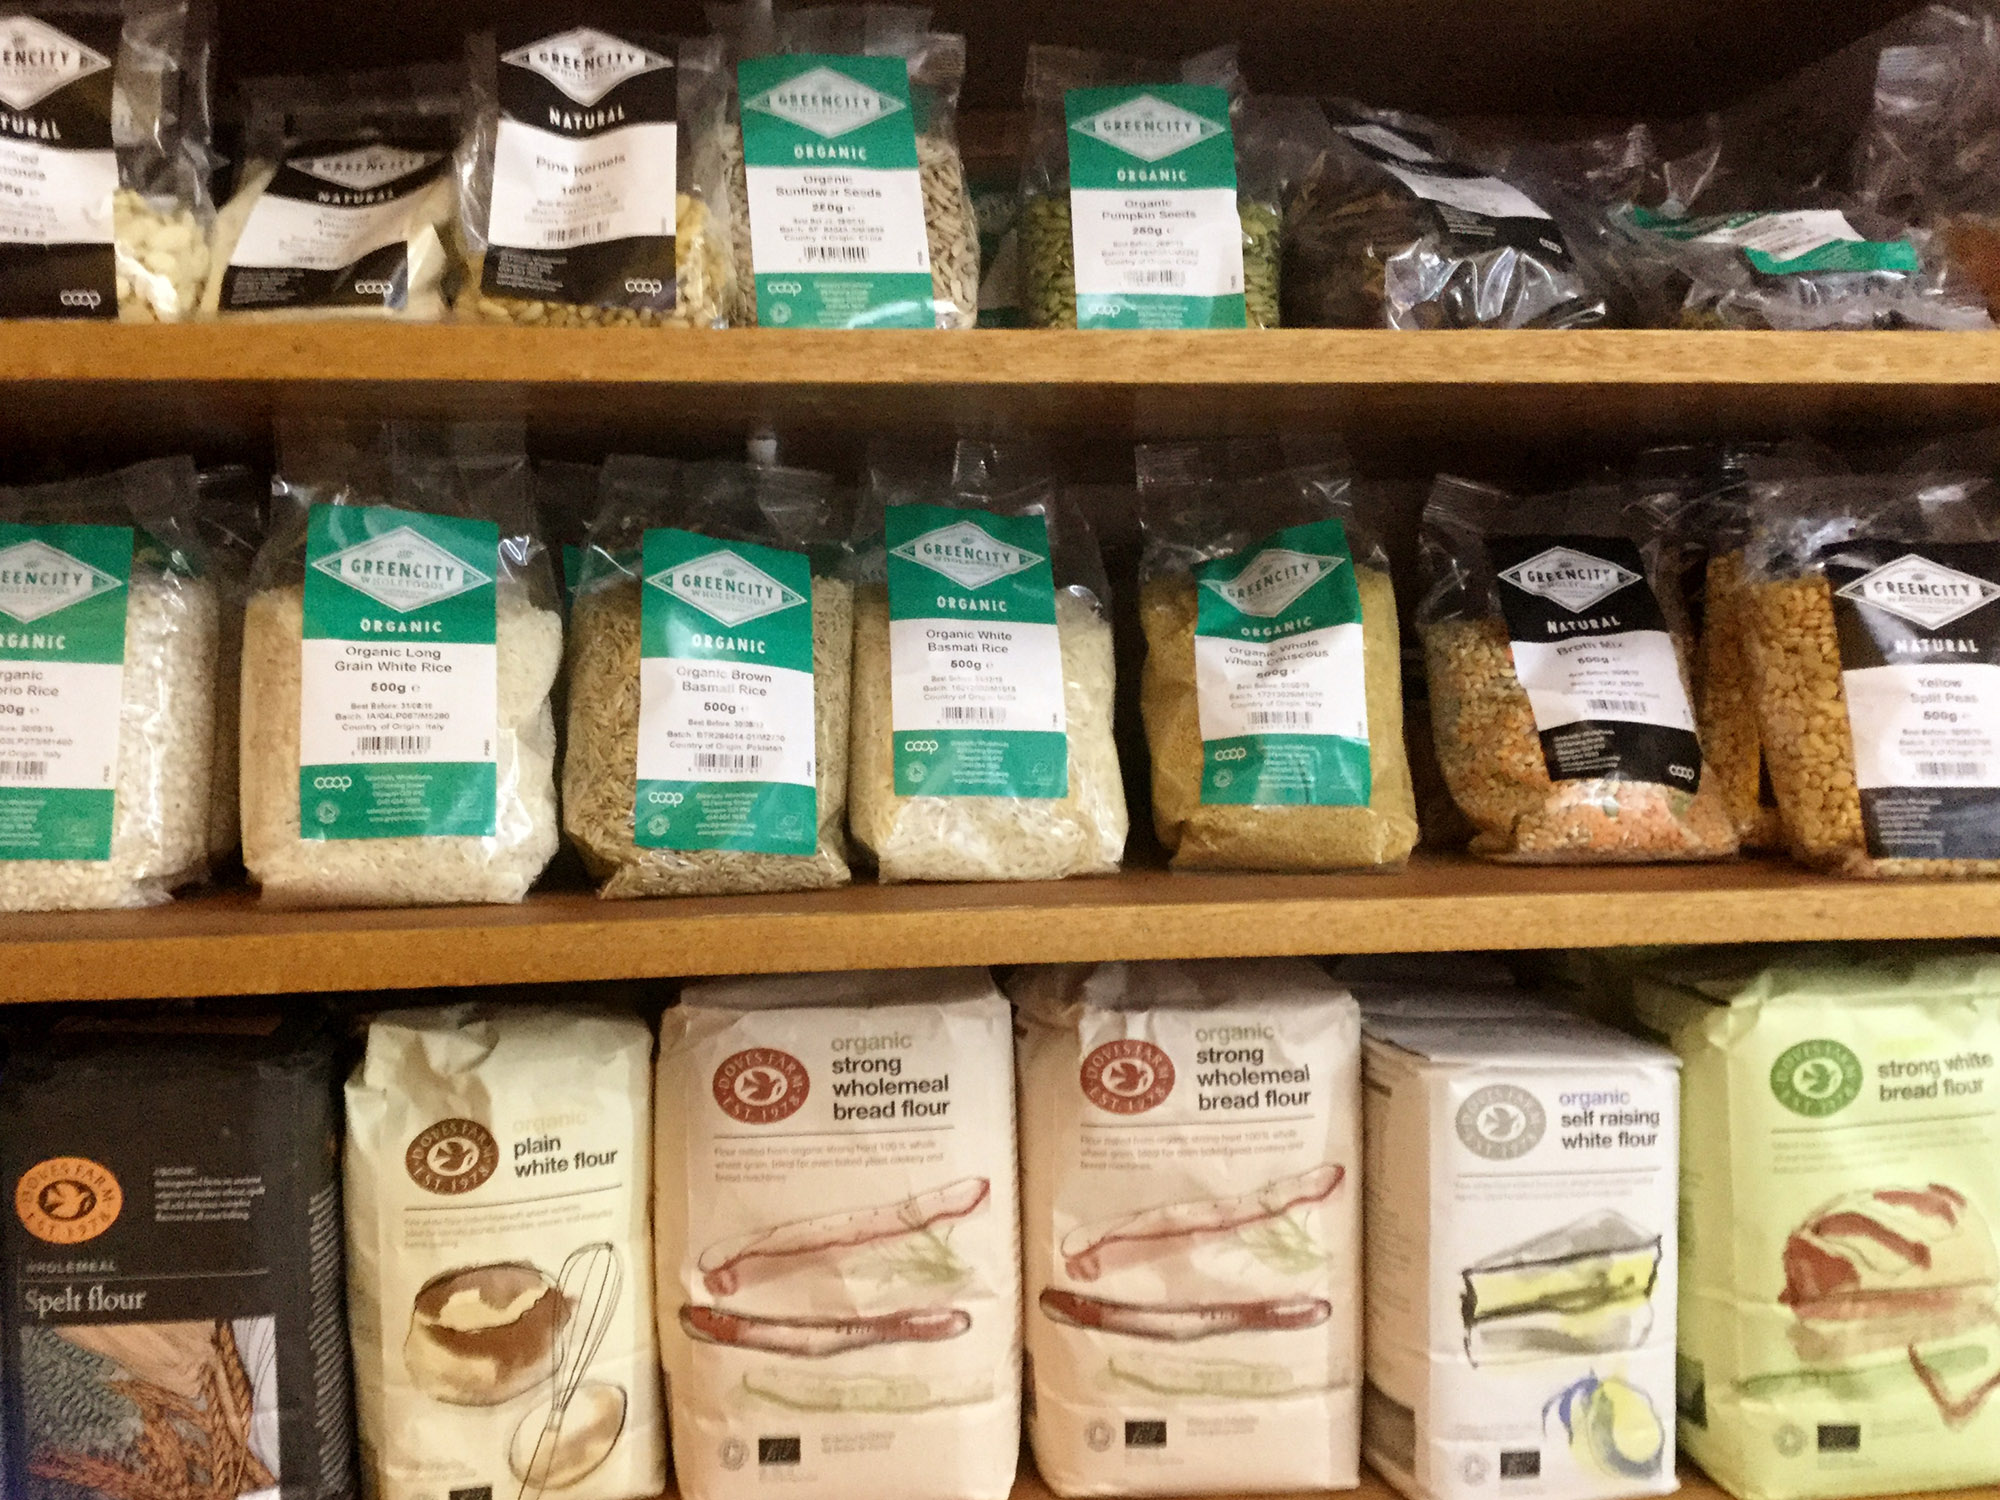 Organic products for sale in the Village Shop Gartmore